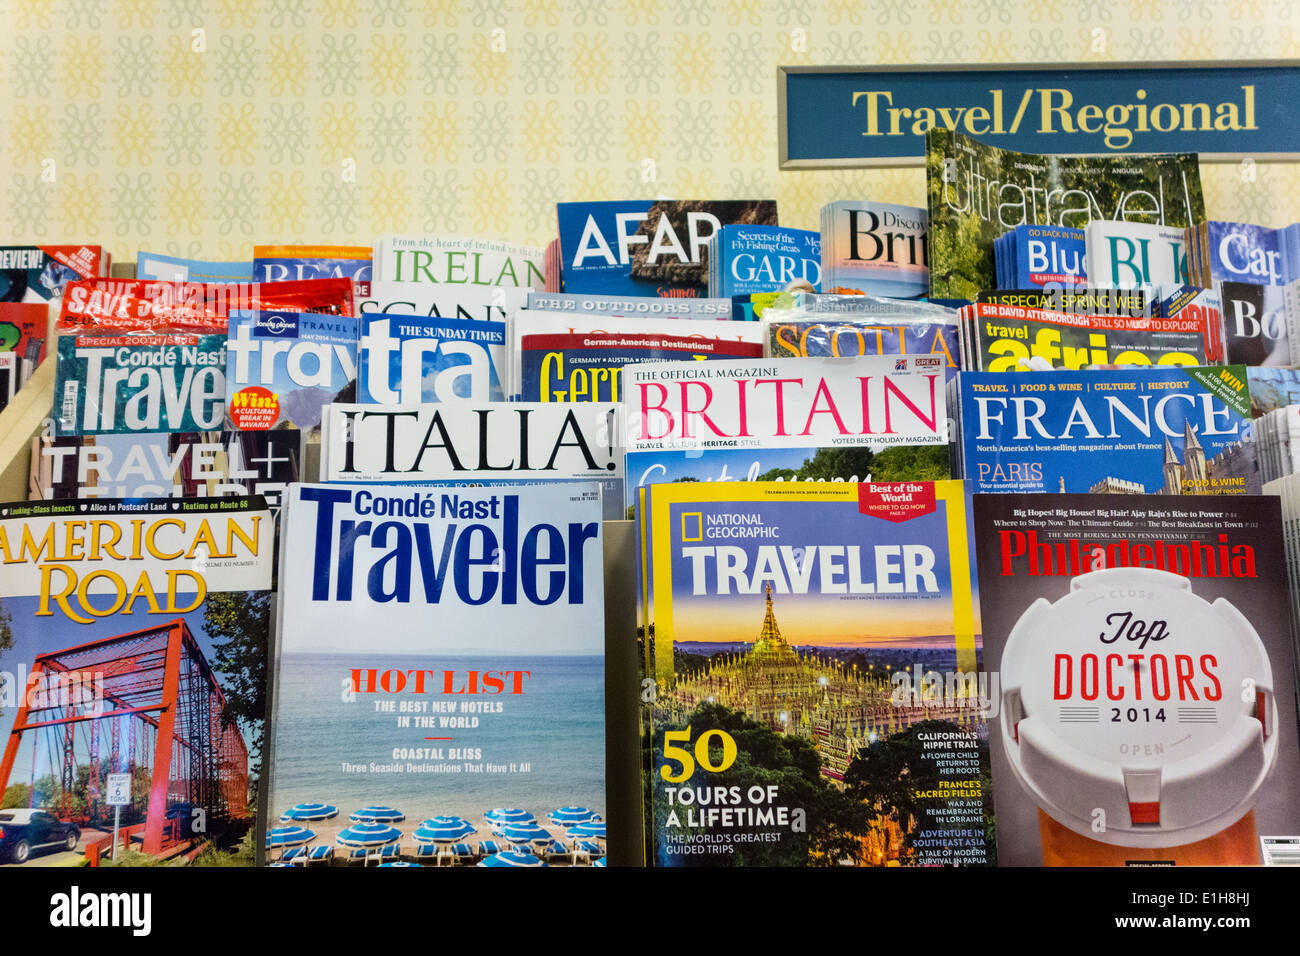 travel and regional magazines on shelves, Barnes and Noble, USA - Stock Image